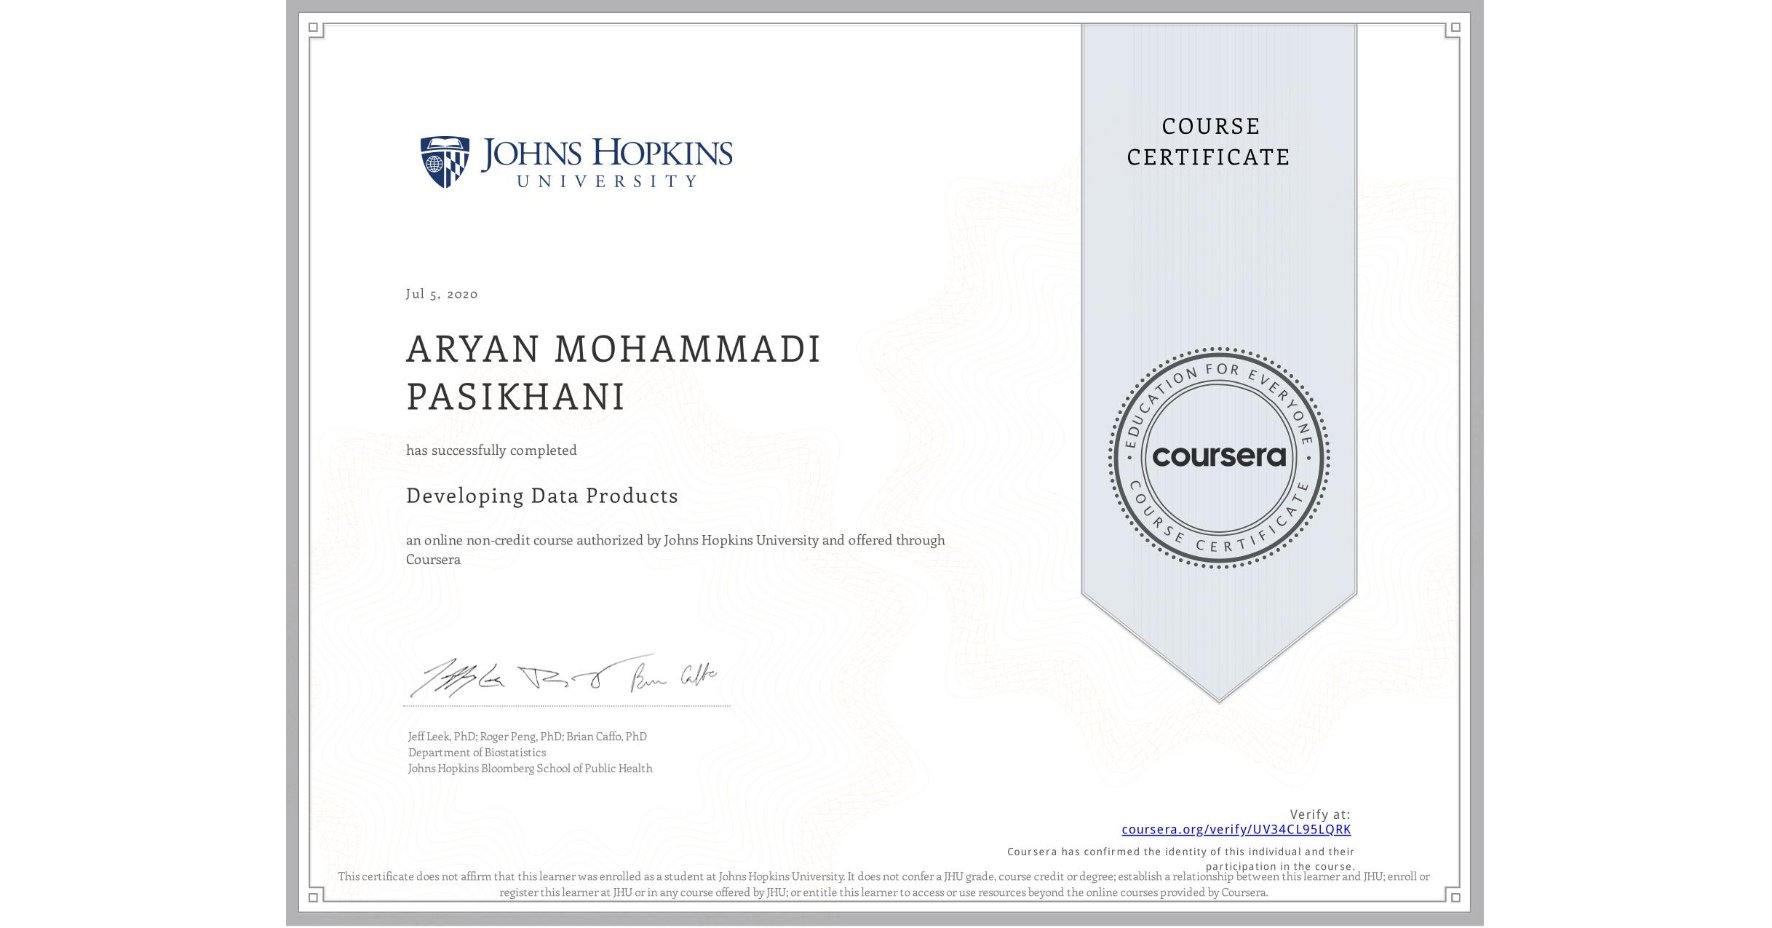 View certificate for ARYAN MOHAMMADI PASIKHANI, Developing Data Products, an online non-credit course authorized by Johns Hopkins University and offered through Coursera